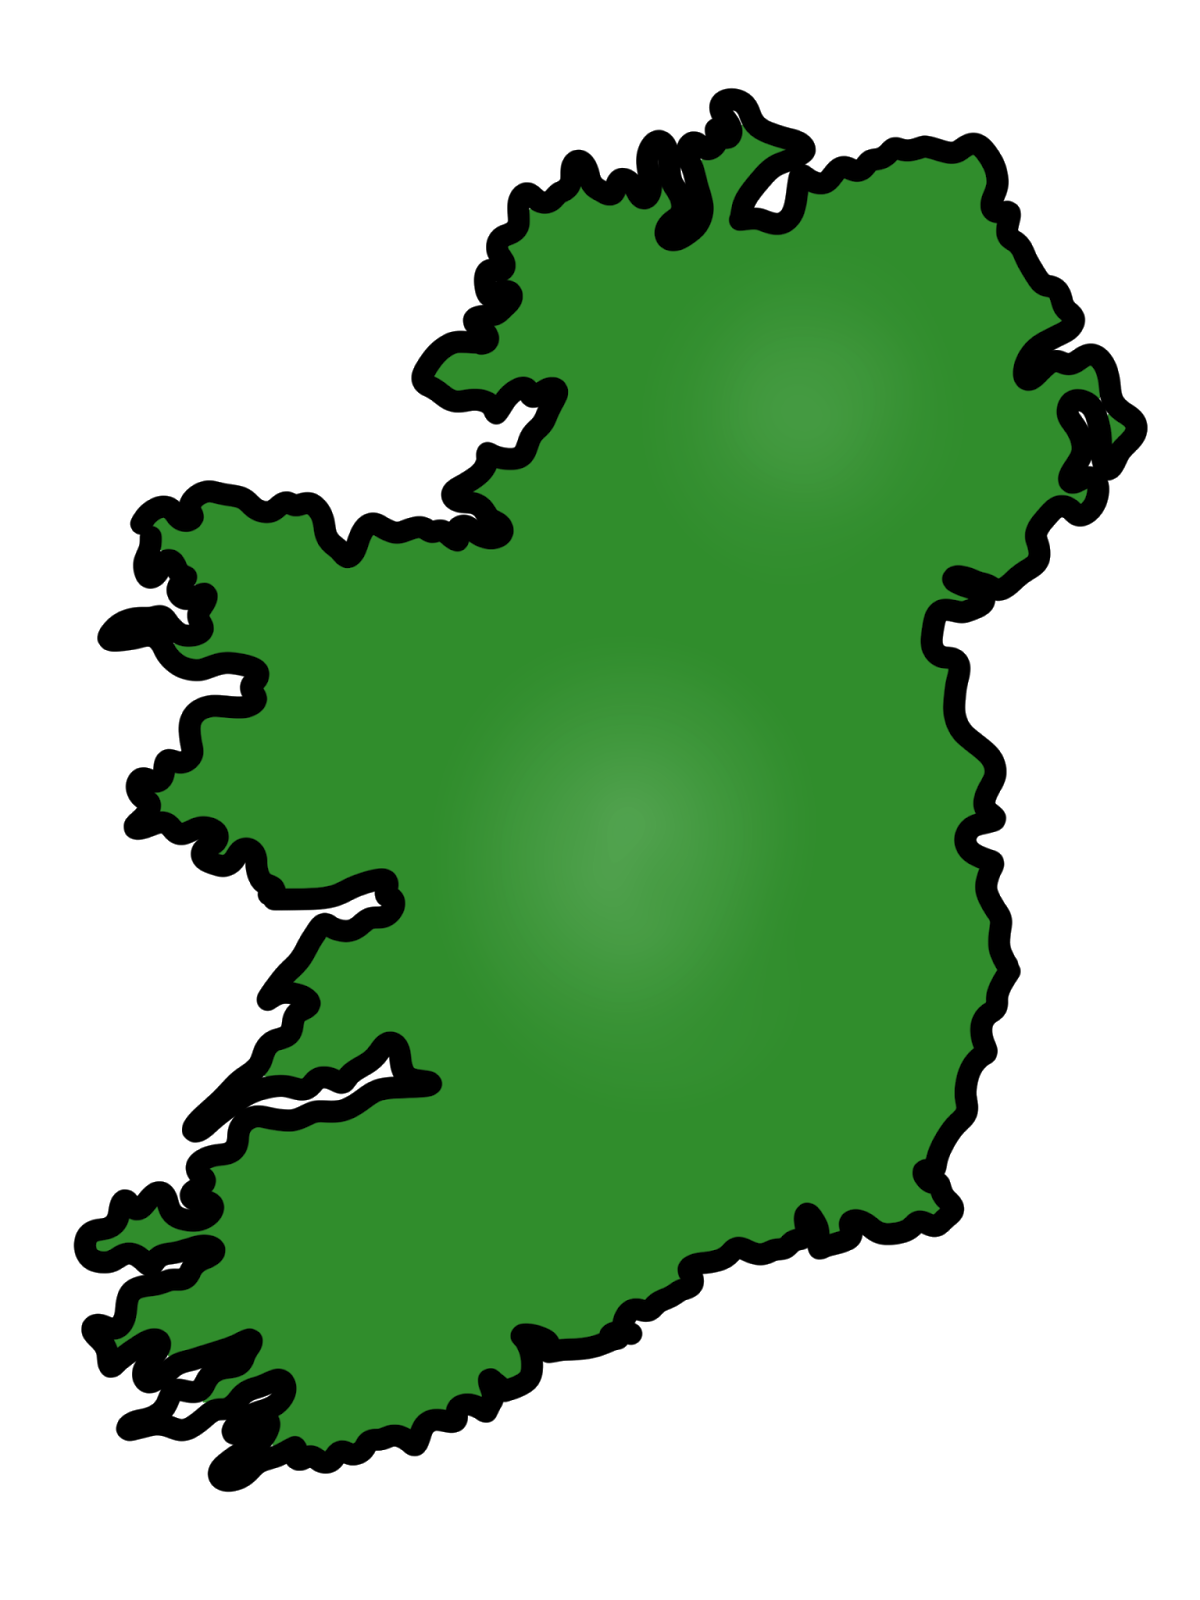 Free clipart ireland vector black and white Free Irish Cliparts, Download Free Clip Art, Free Clip Art on ... vector black and white